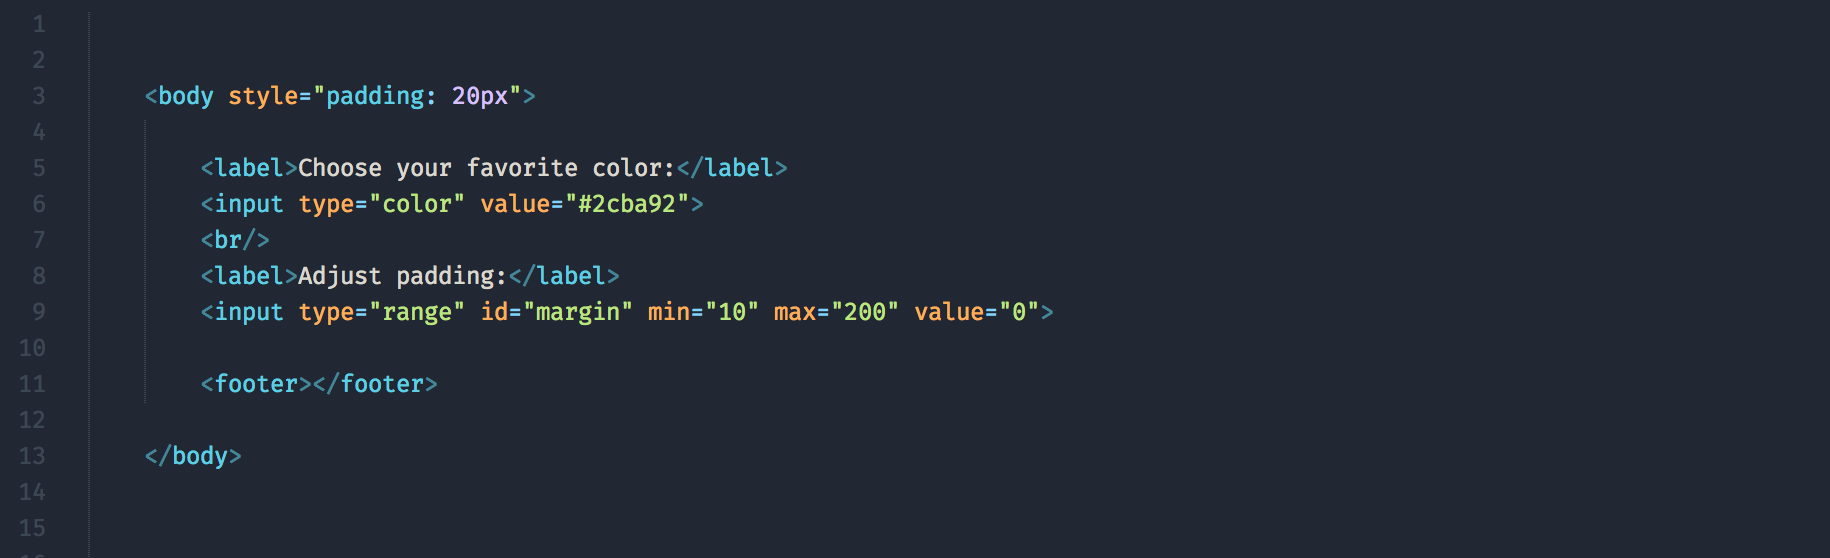 Accessing and modifying CSS variables with Javascript